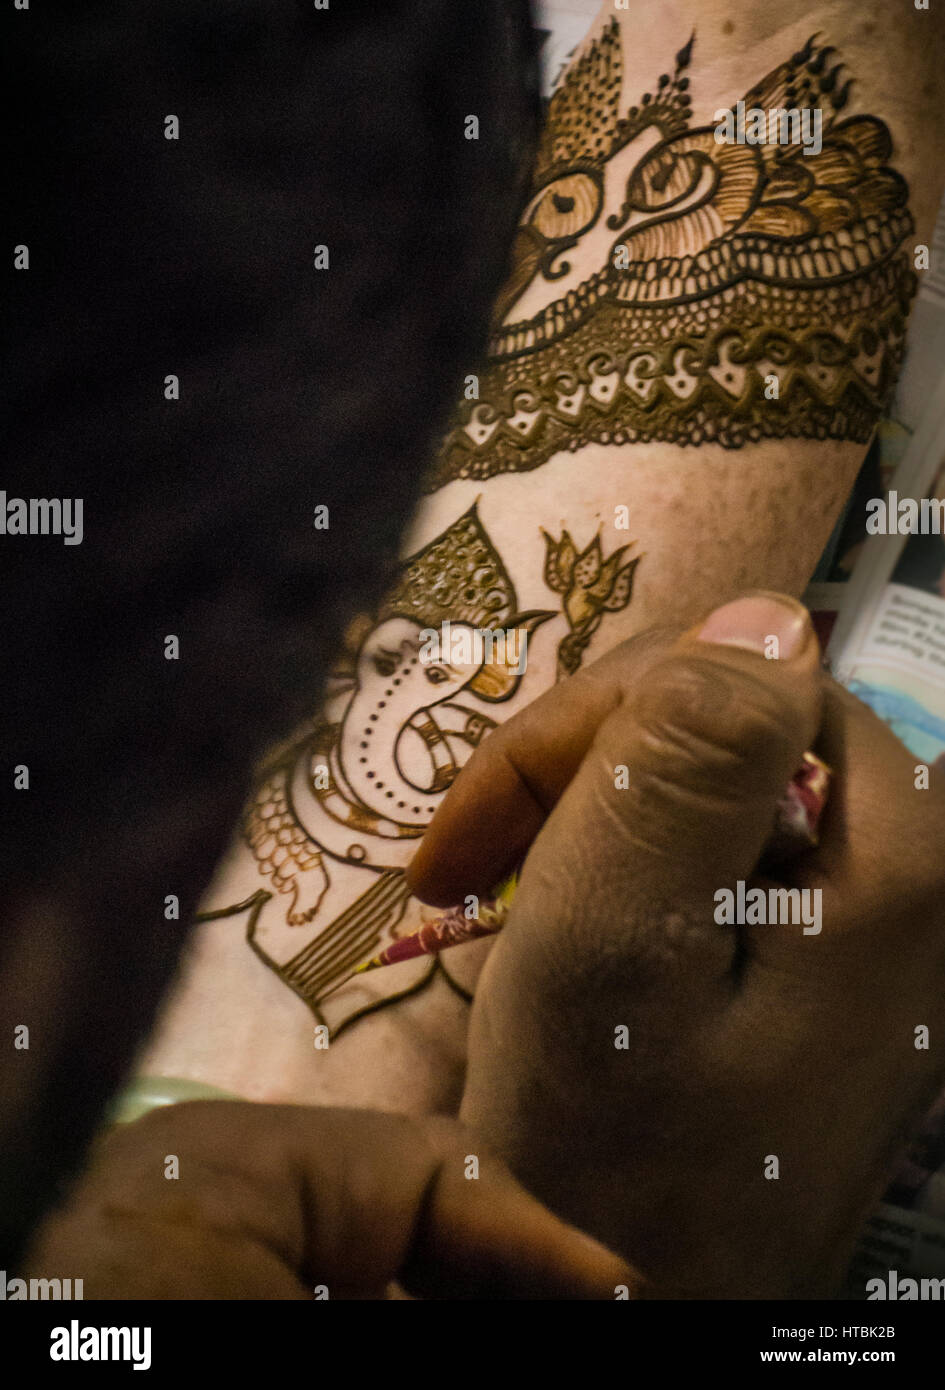 A Henna / Mehndi artist working on a bride's arm during a Henna party. The Elephant figure is Ganesha, one of - Stock Image